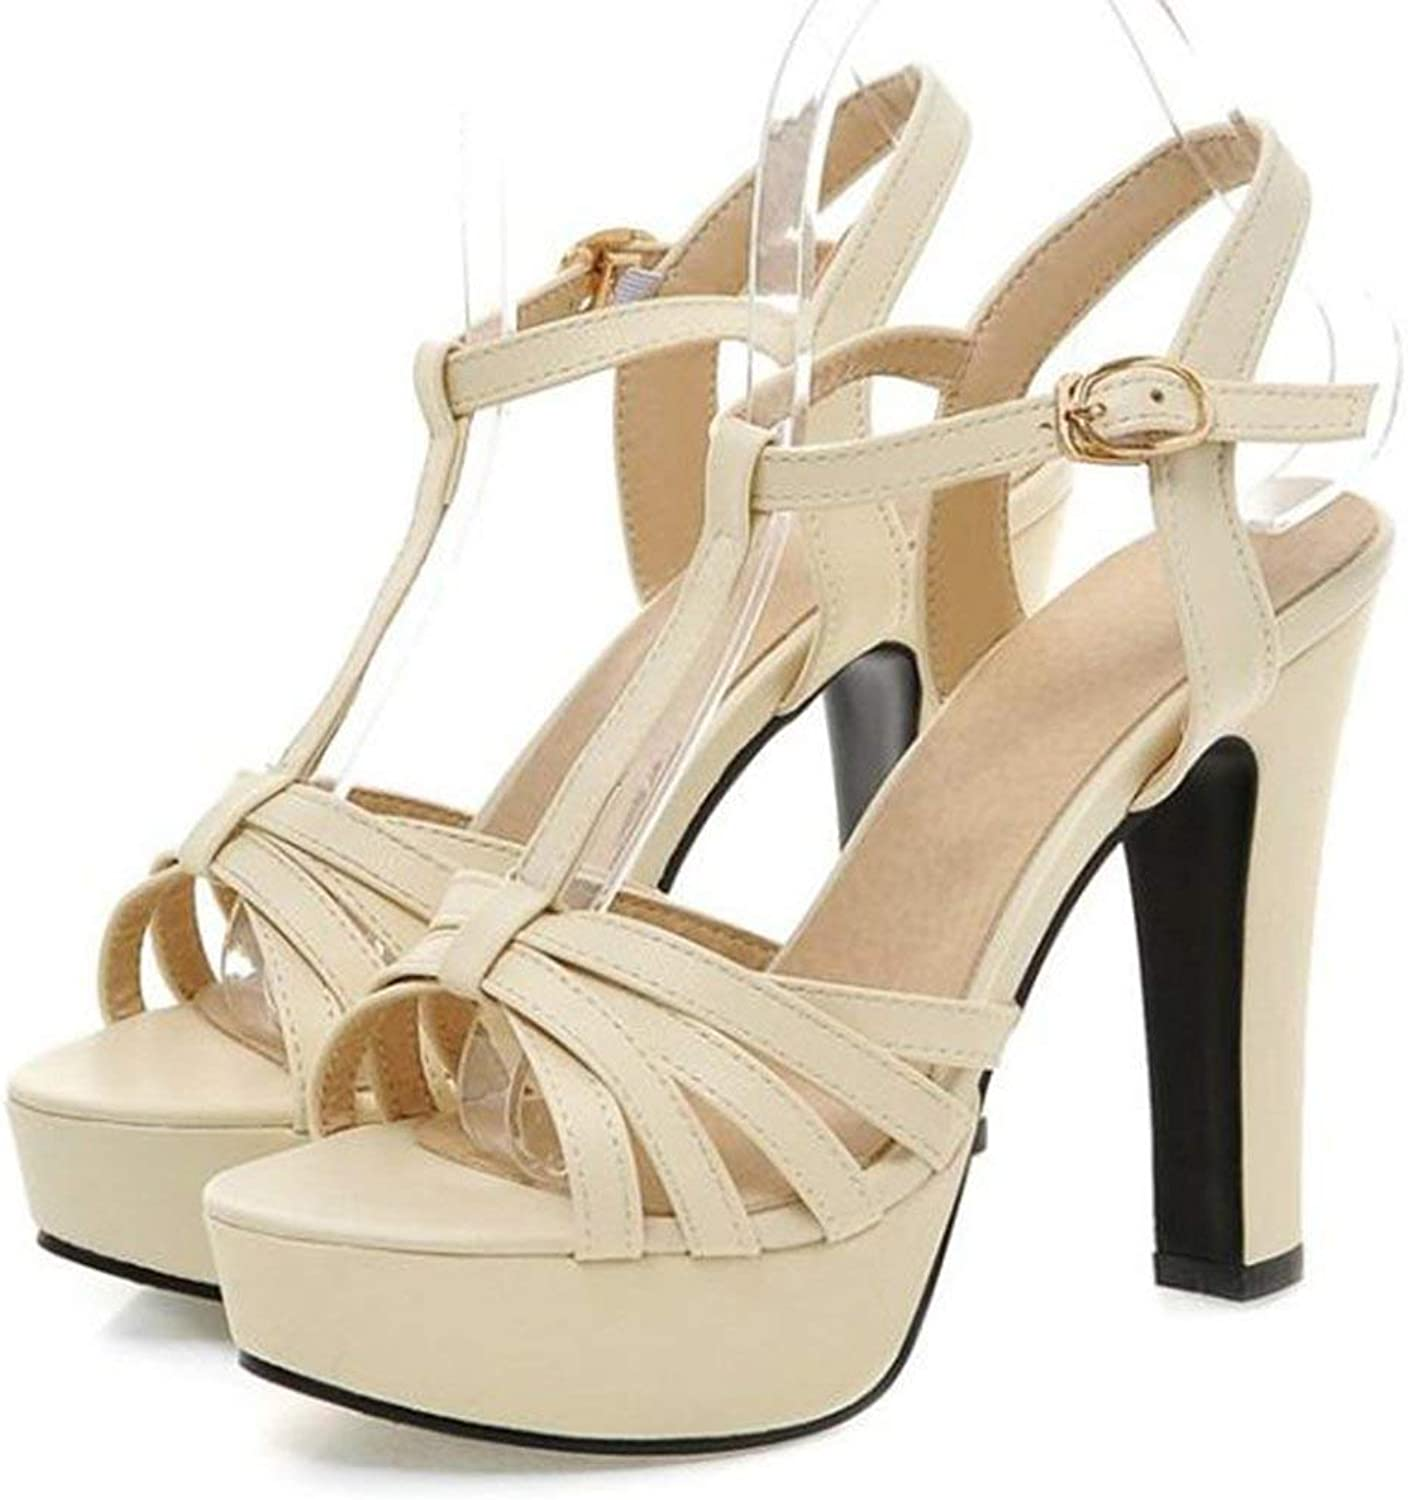 Gedigits Women's Sexy Peep Toe T-Strap Cocktail shoes Chunky High Heel Platform Strappy Sandals Beige 4 M US